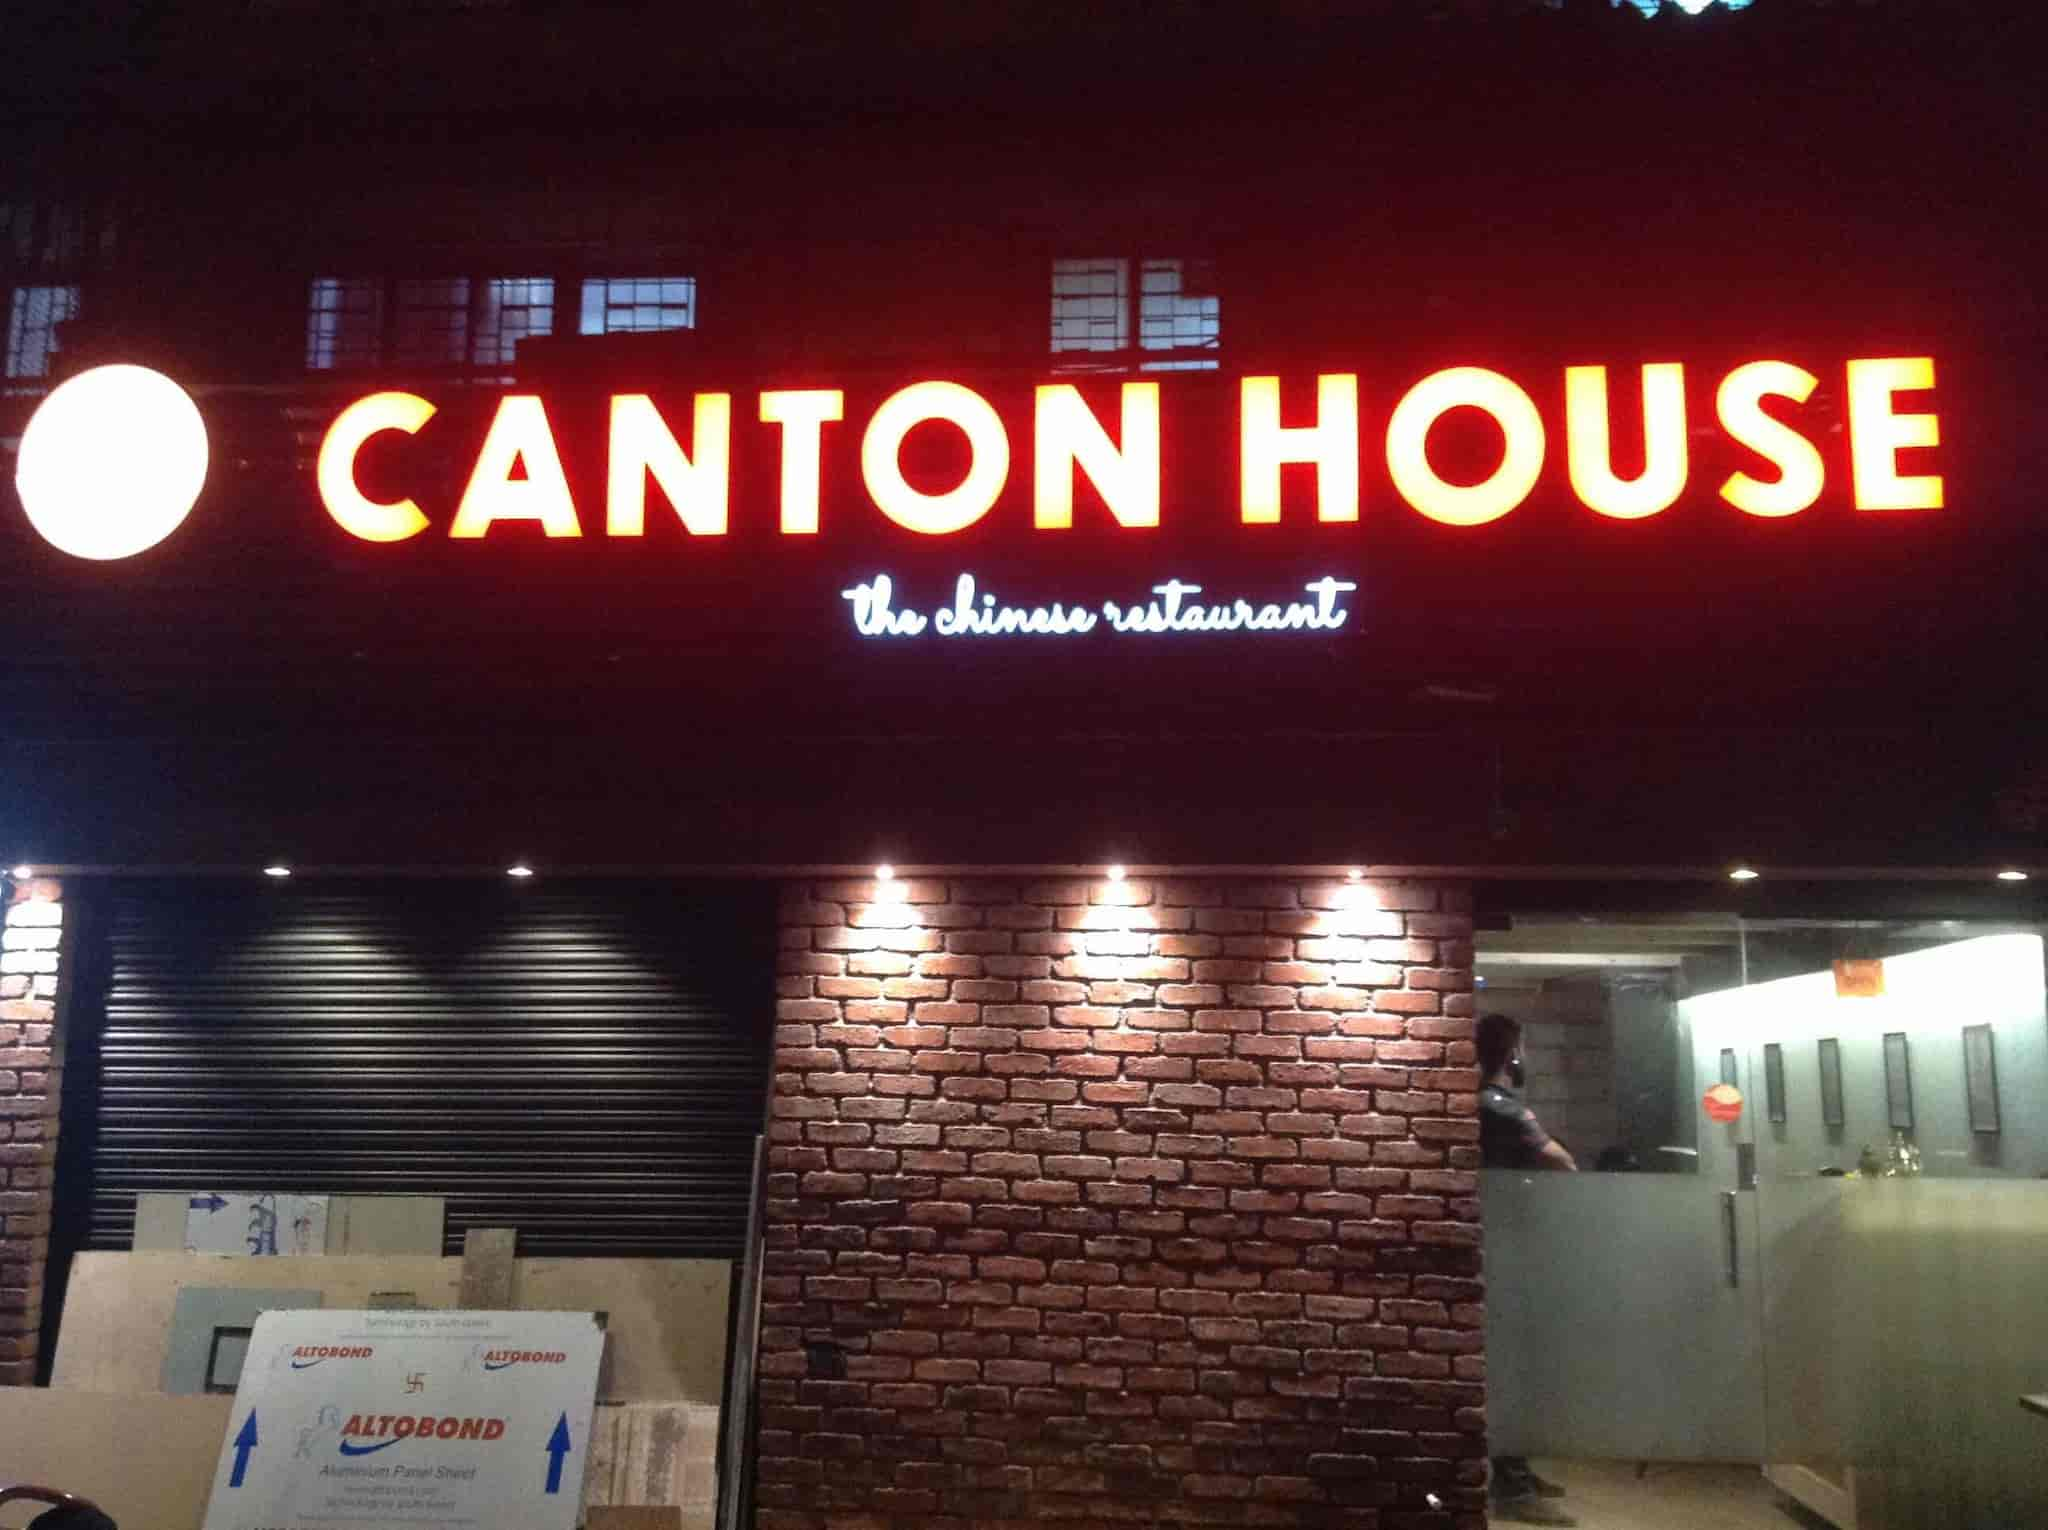 Canton House Photos Mira Road Thane Pictures Images Gallery